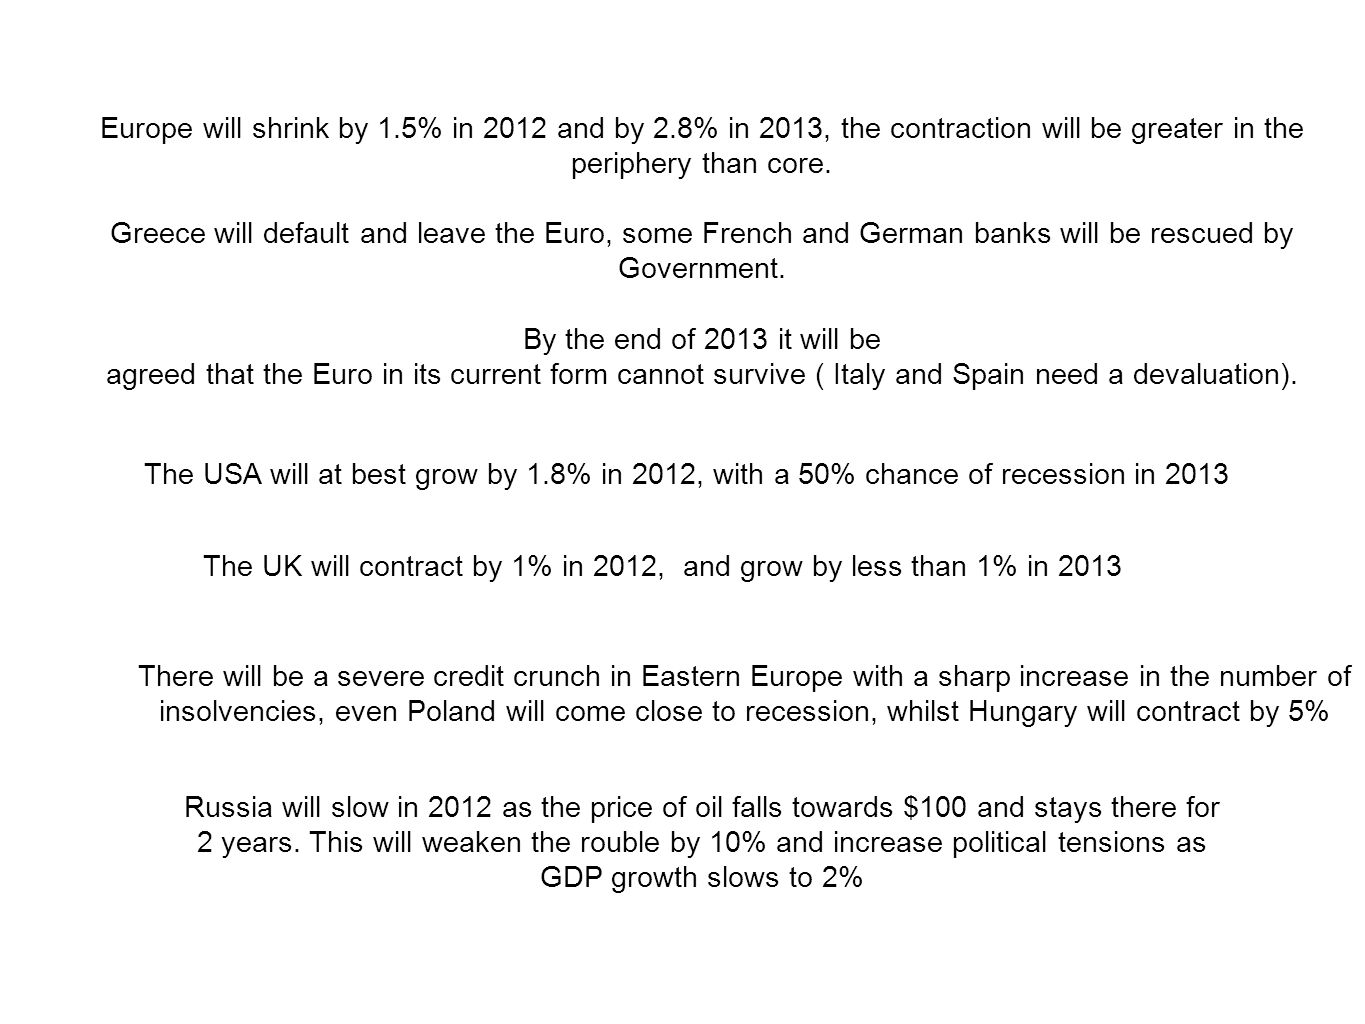 Europe will shrink by 1.5% in 2012 and by 2.8% in 2013, the contraction will be greater in the periphery than core.